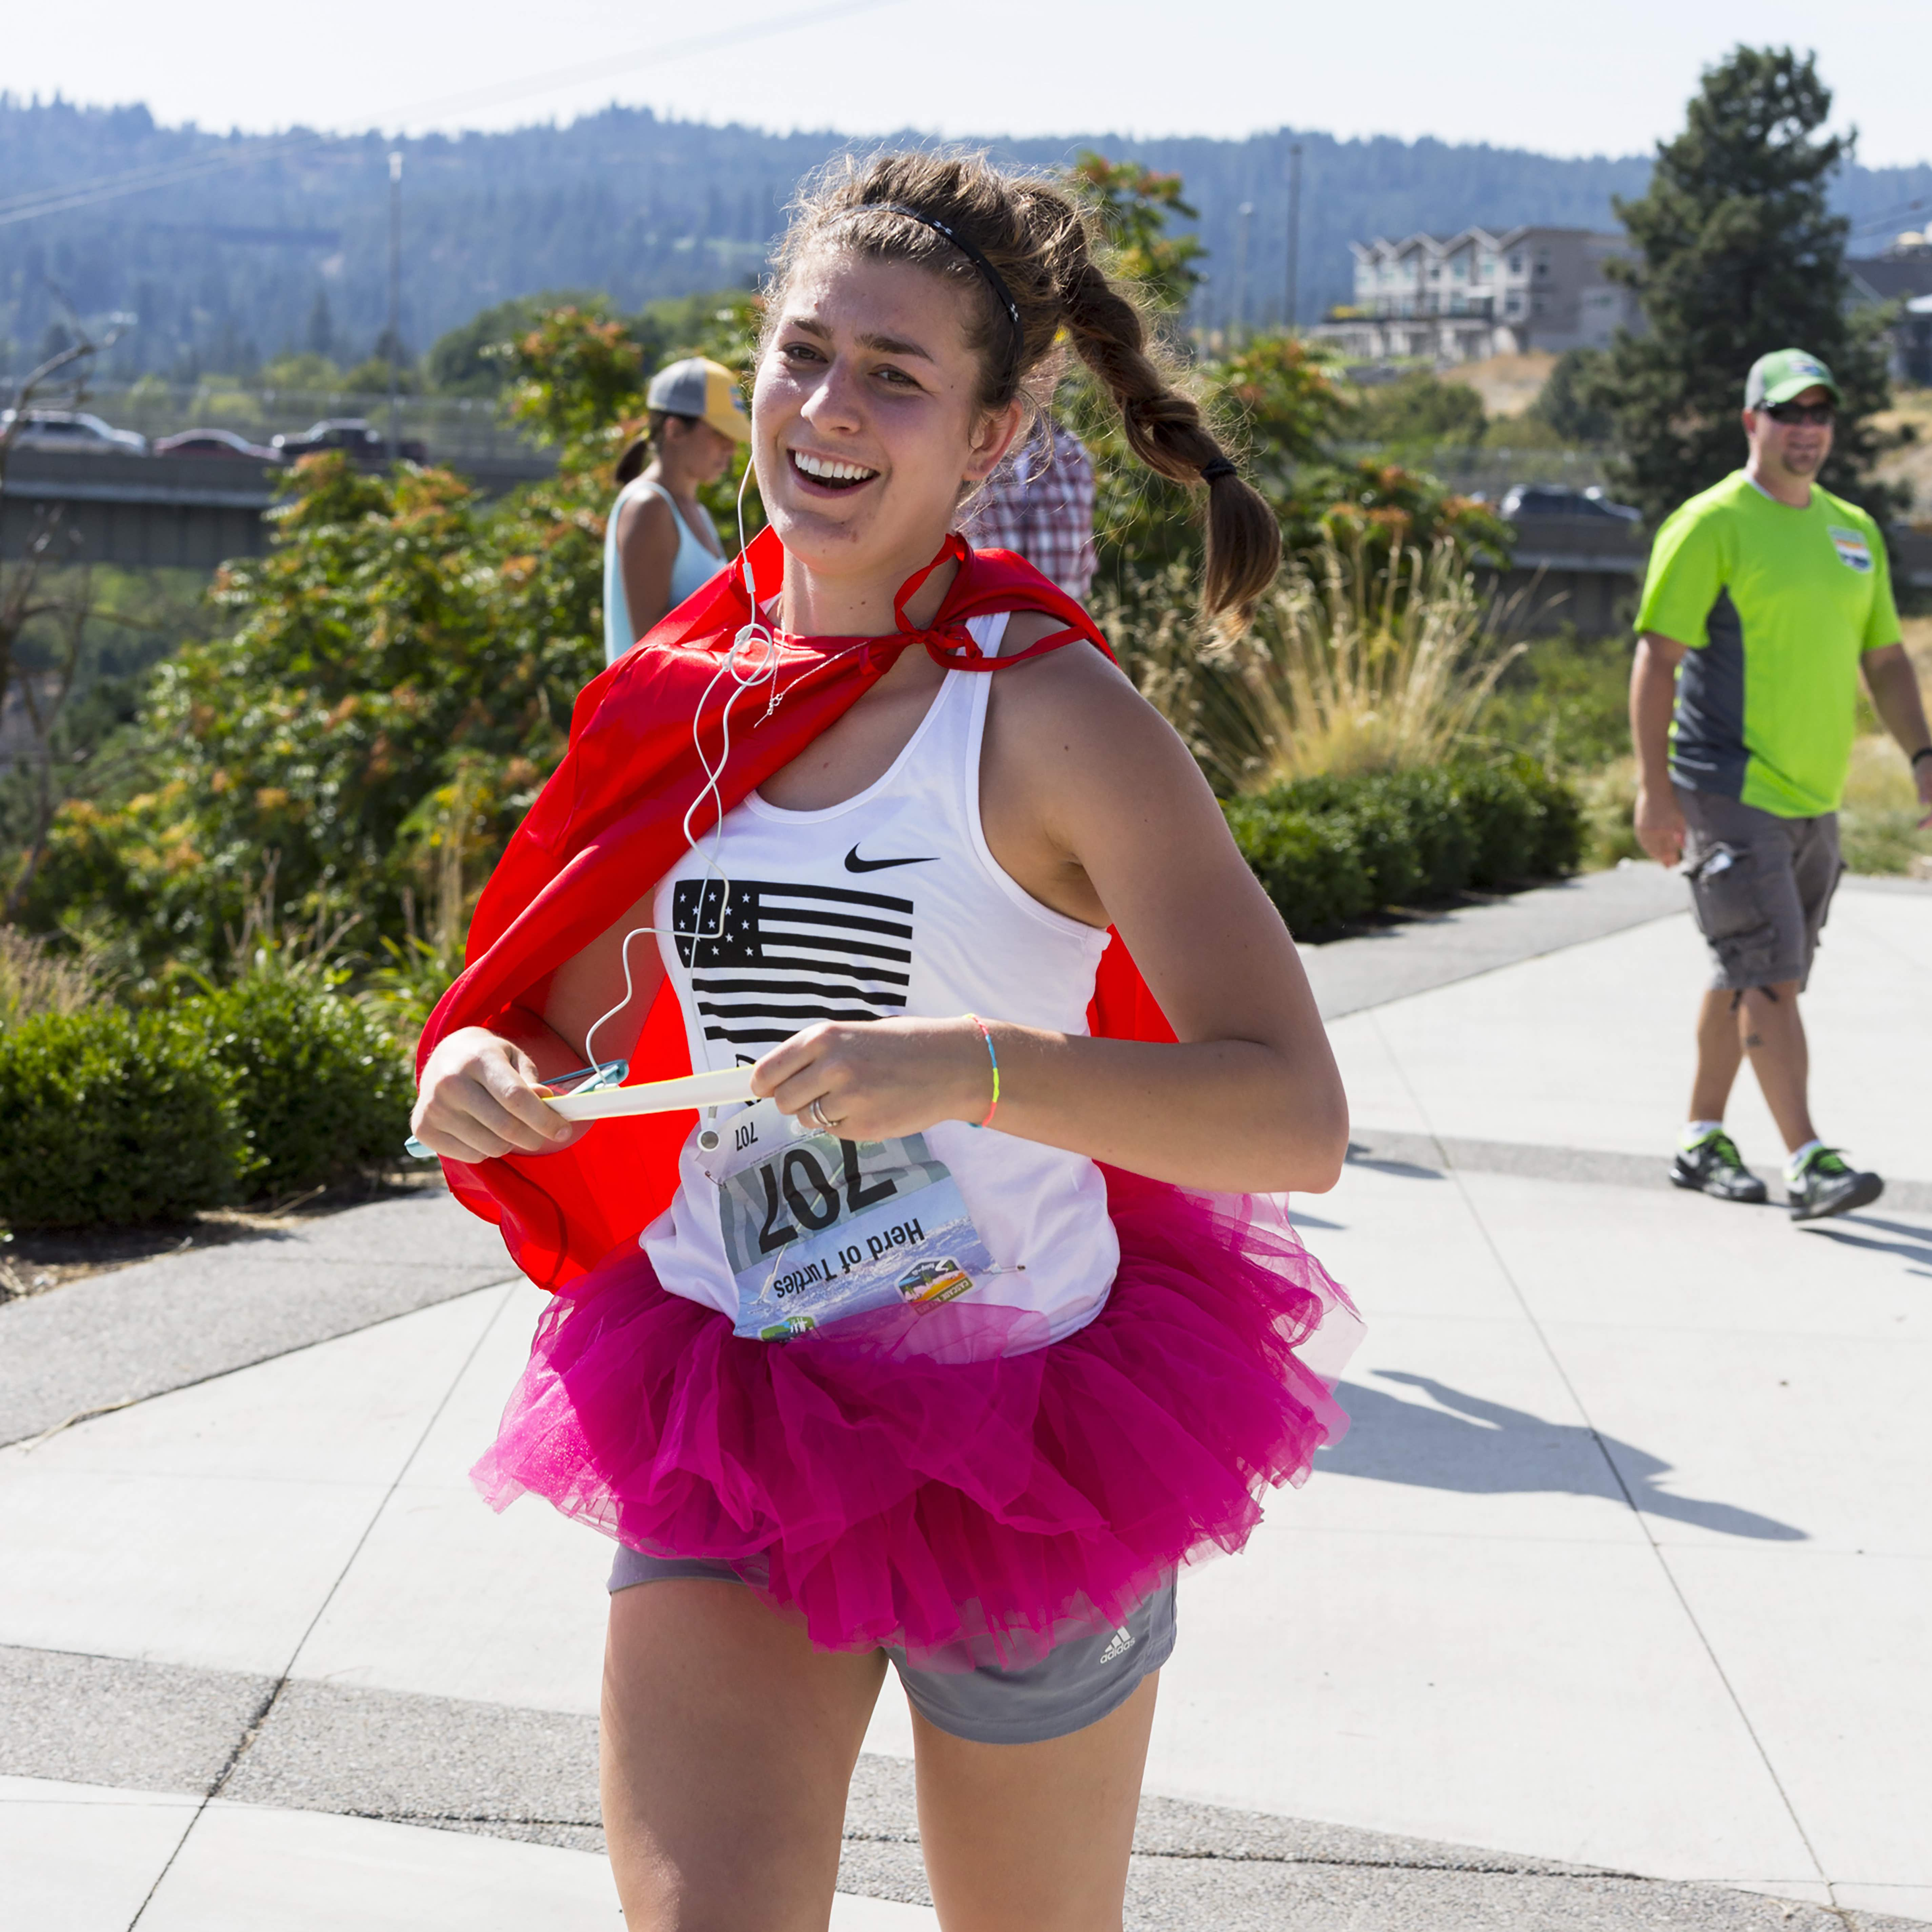 A spirited runner with tutu and cape holds the exchange bracelet for her team.